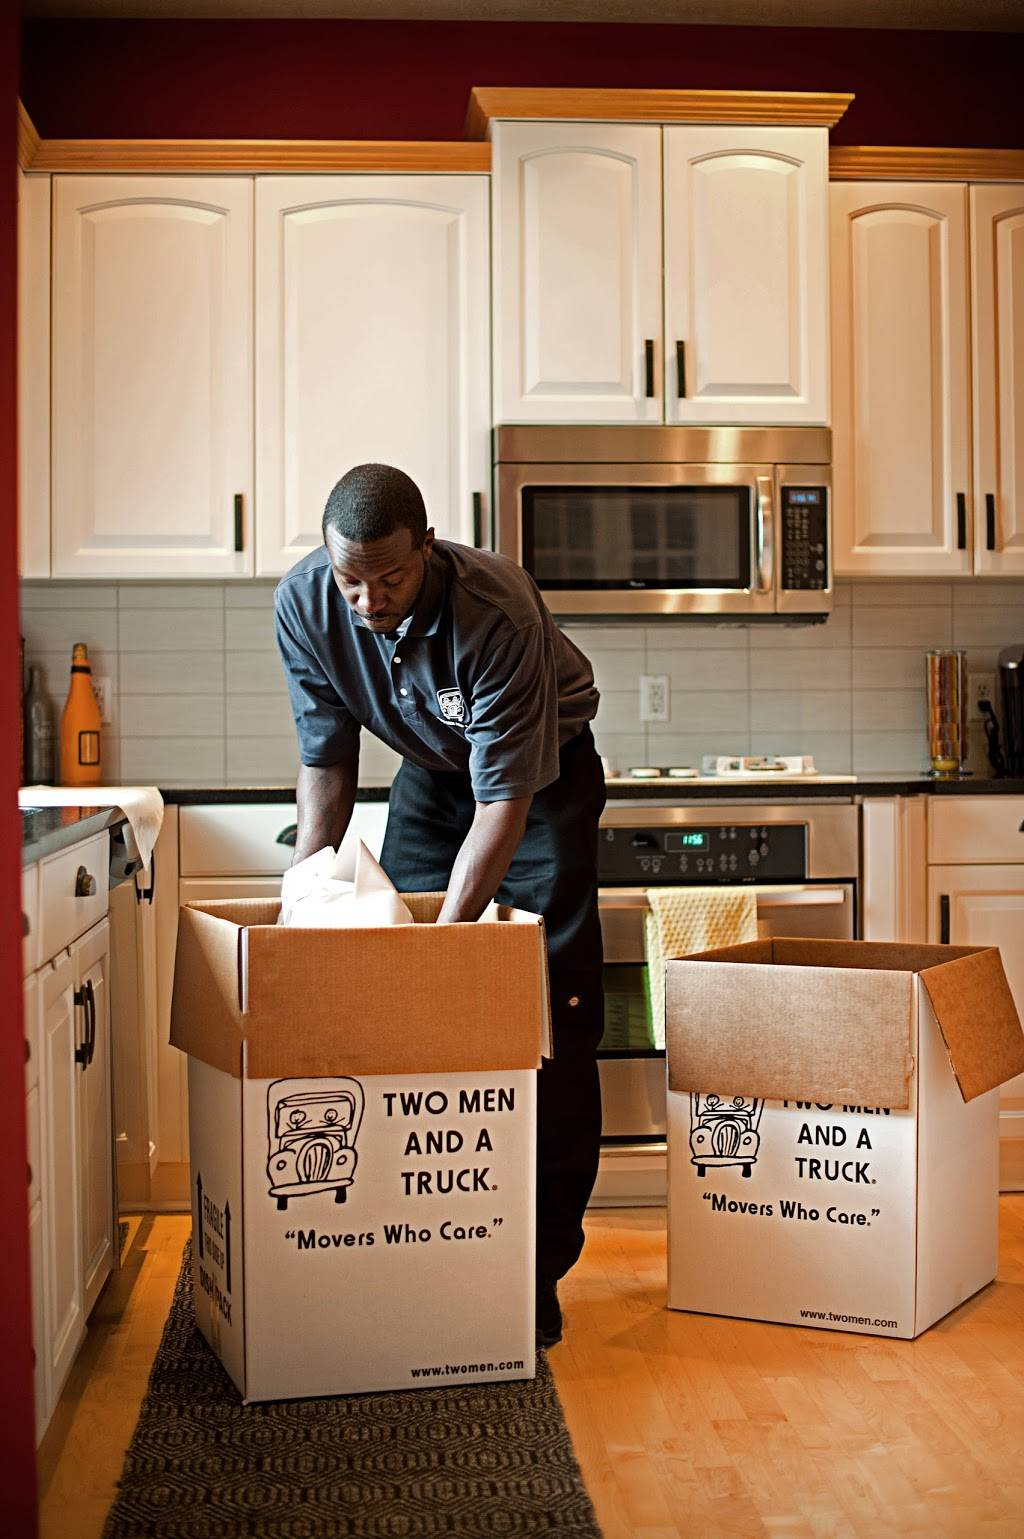 Two Men and a Truck - moving company  | Photo 10 of 10 | Address: 7711 Welborn St Ste 110, Raleigh, NC 27615, USA | Phone: (919) 355-4138